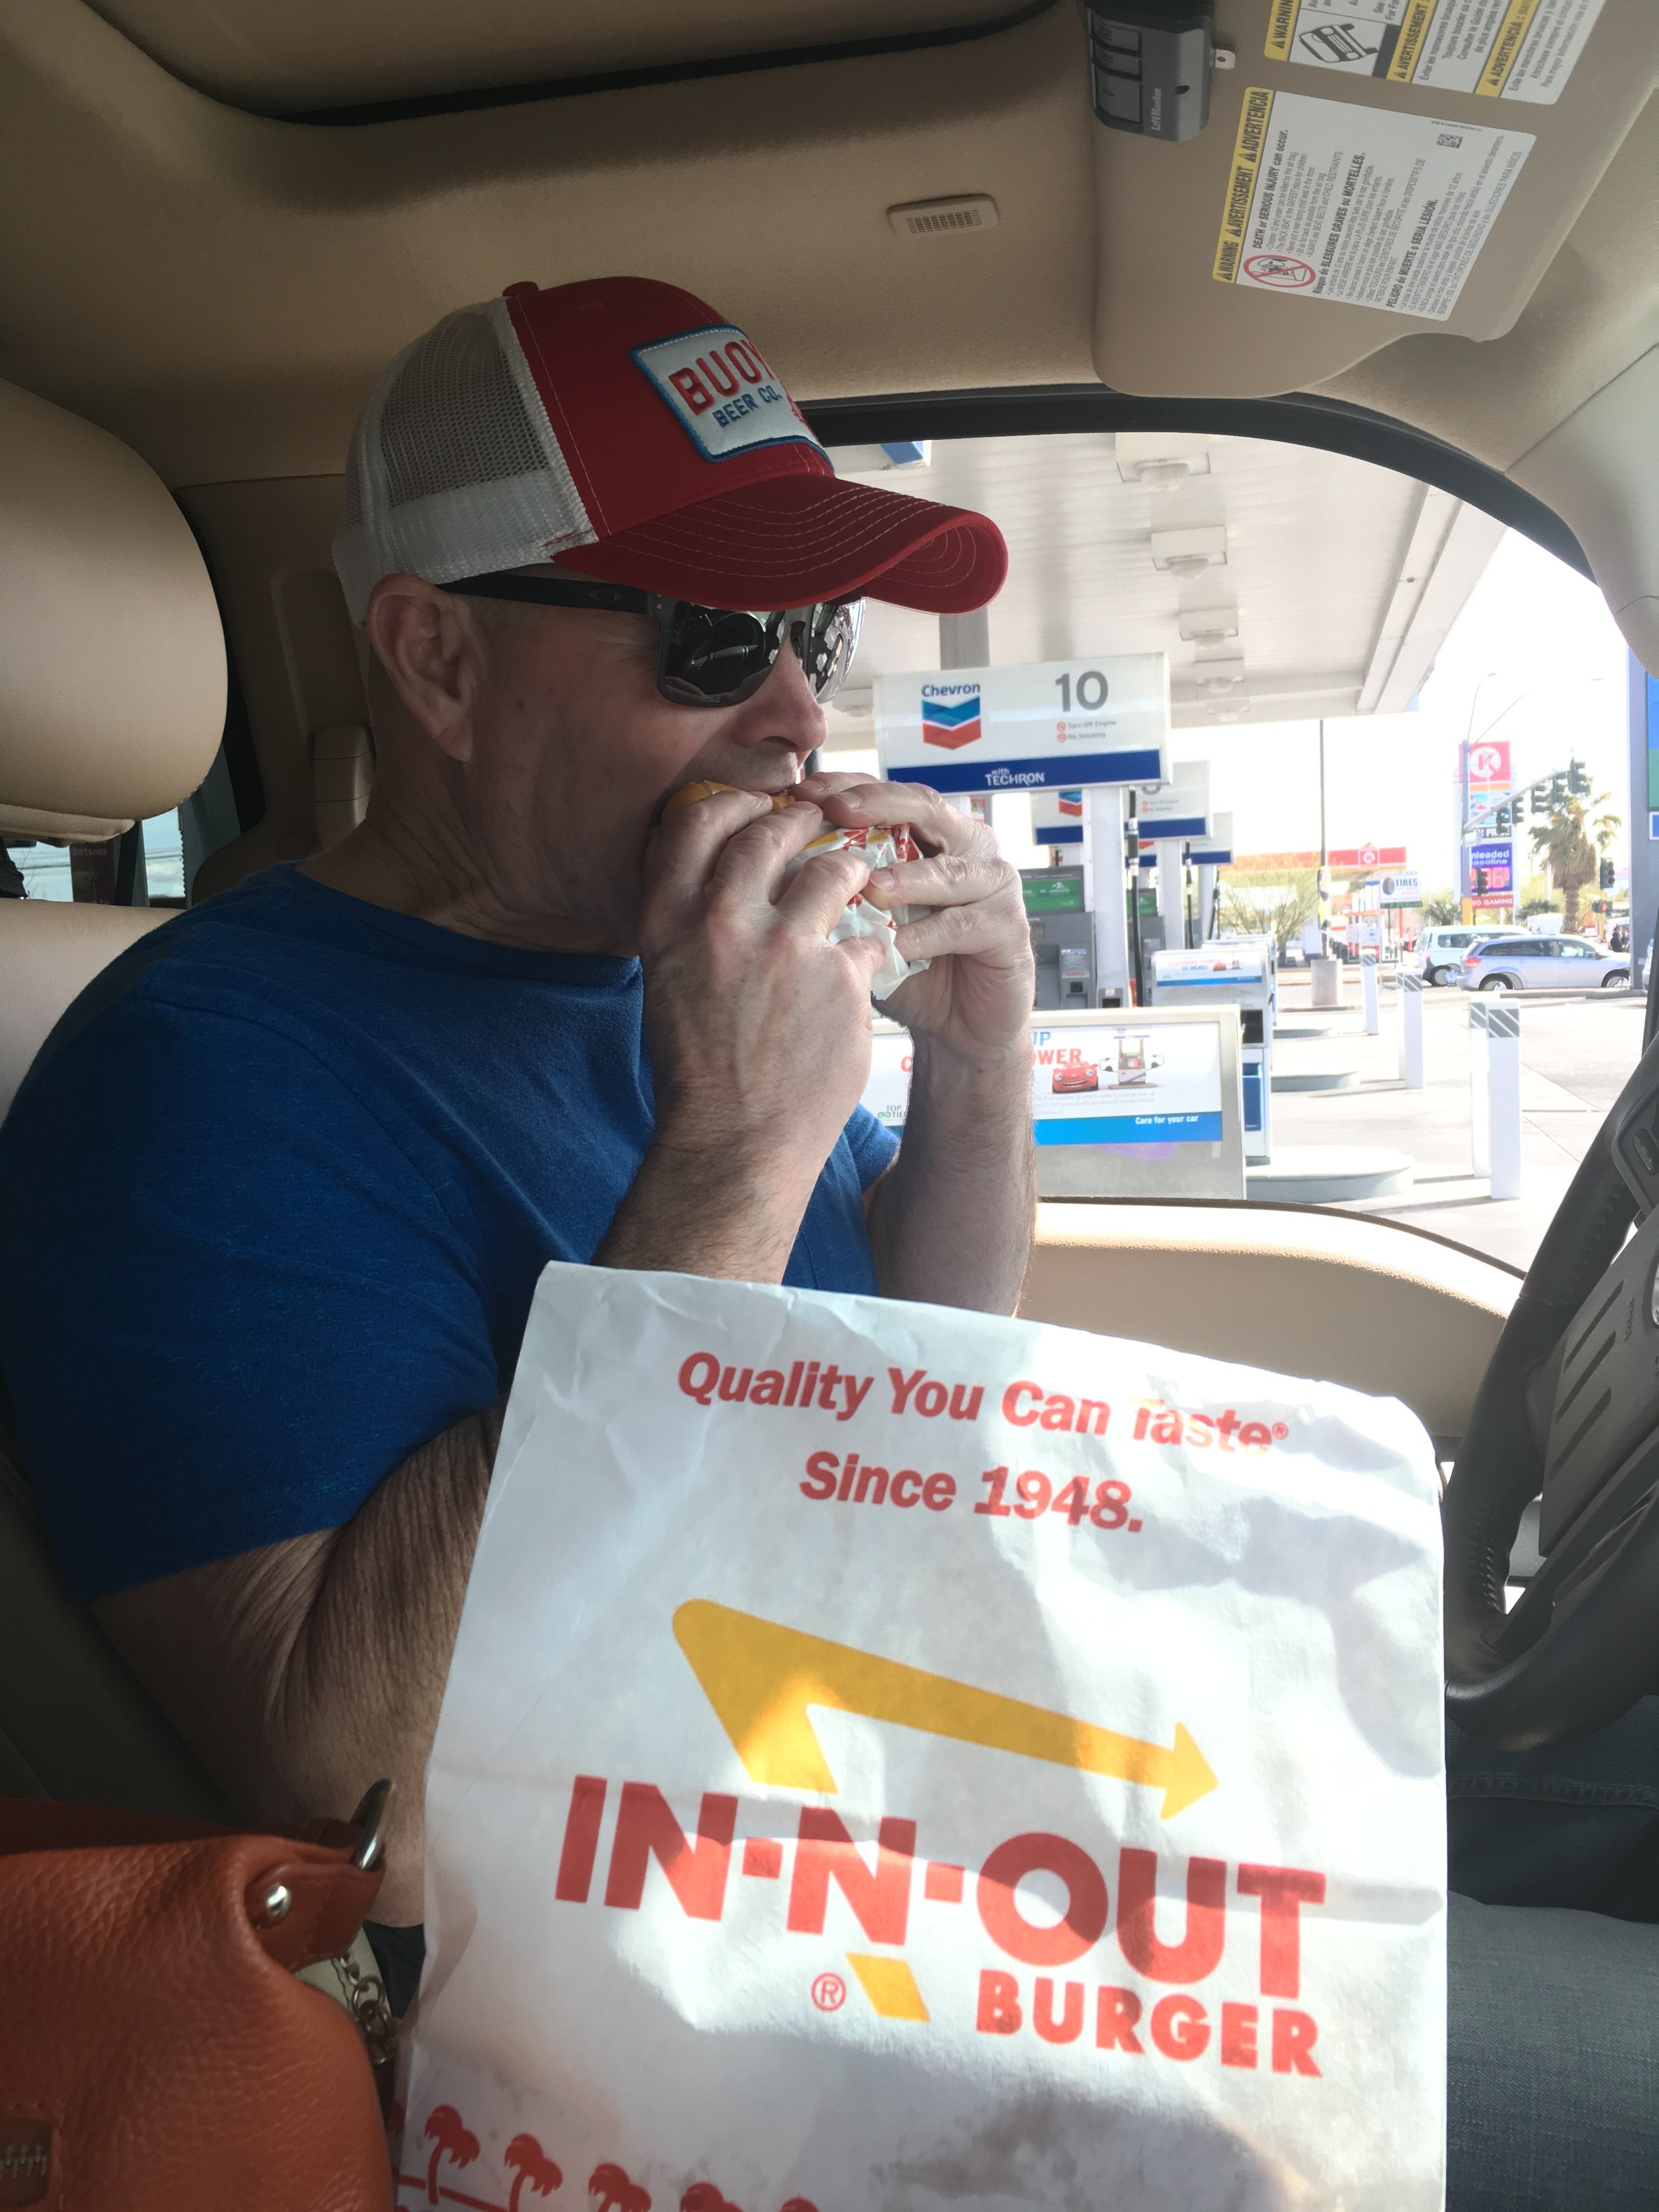 First stop in Vegas! That was his first In and Out burger since we left So Cal. 3 1/2 years ago!